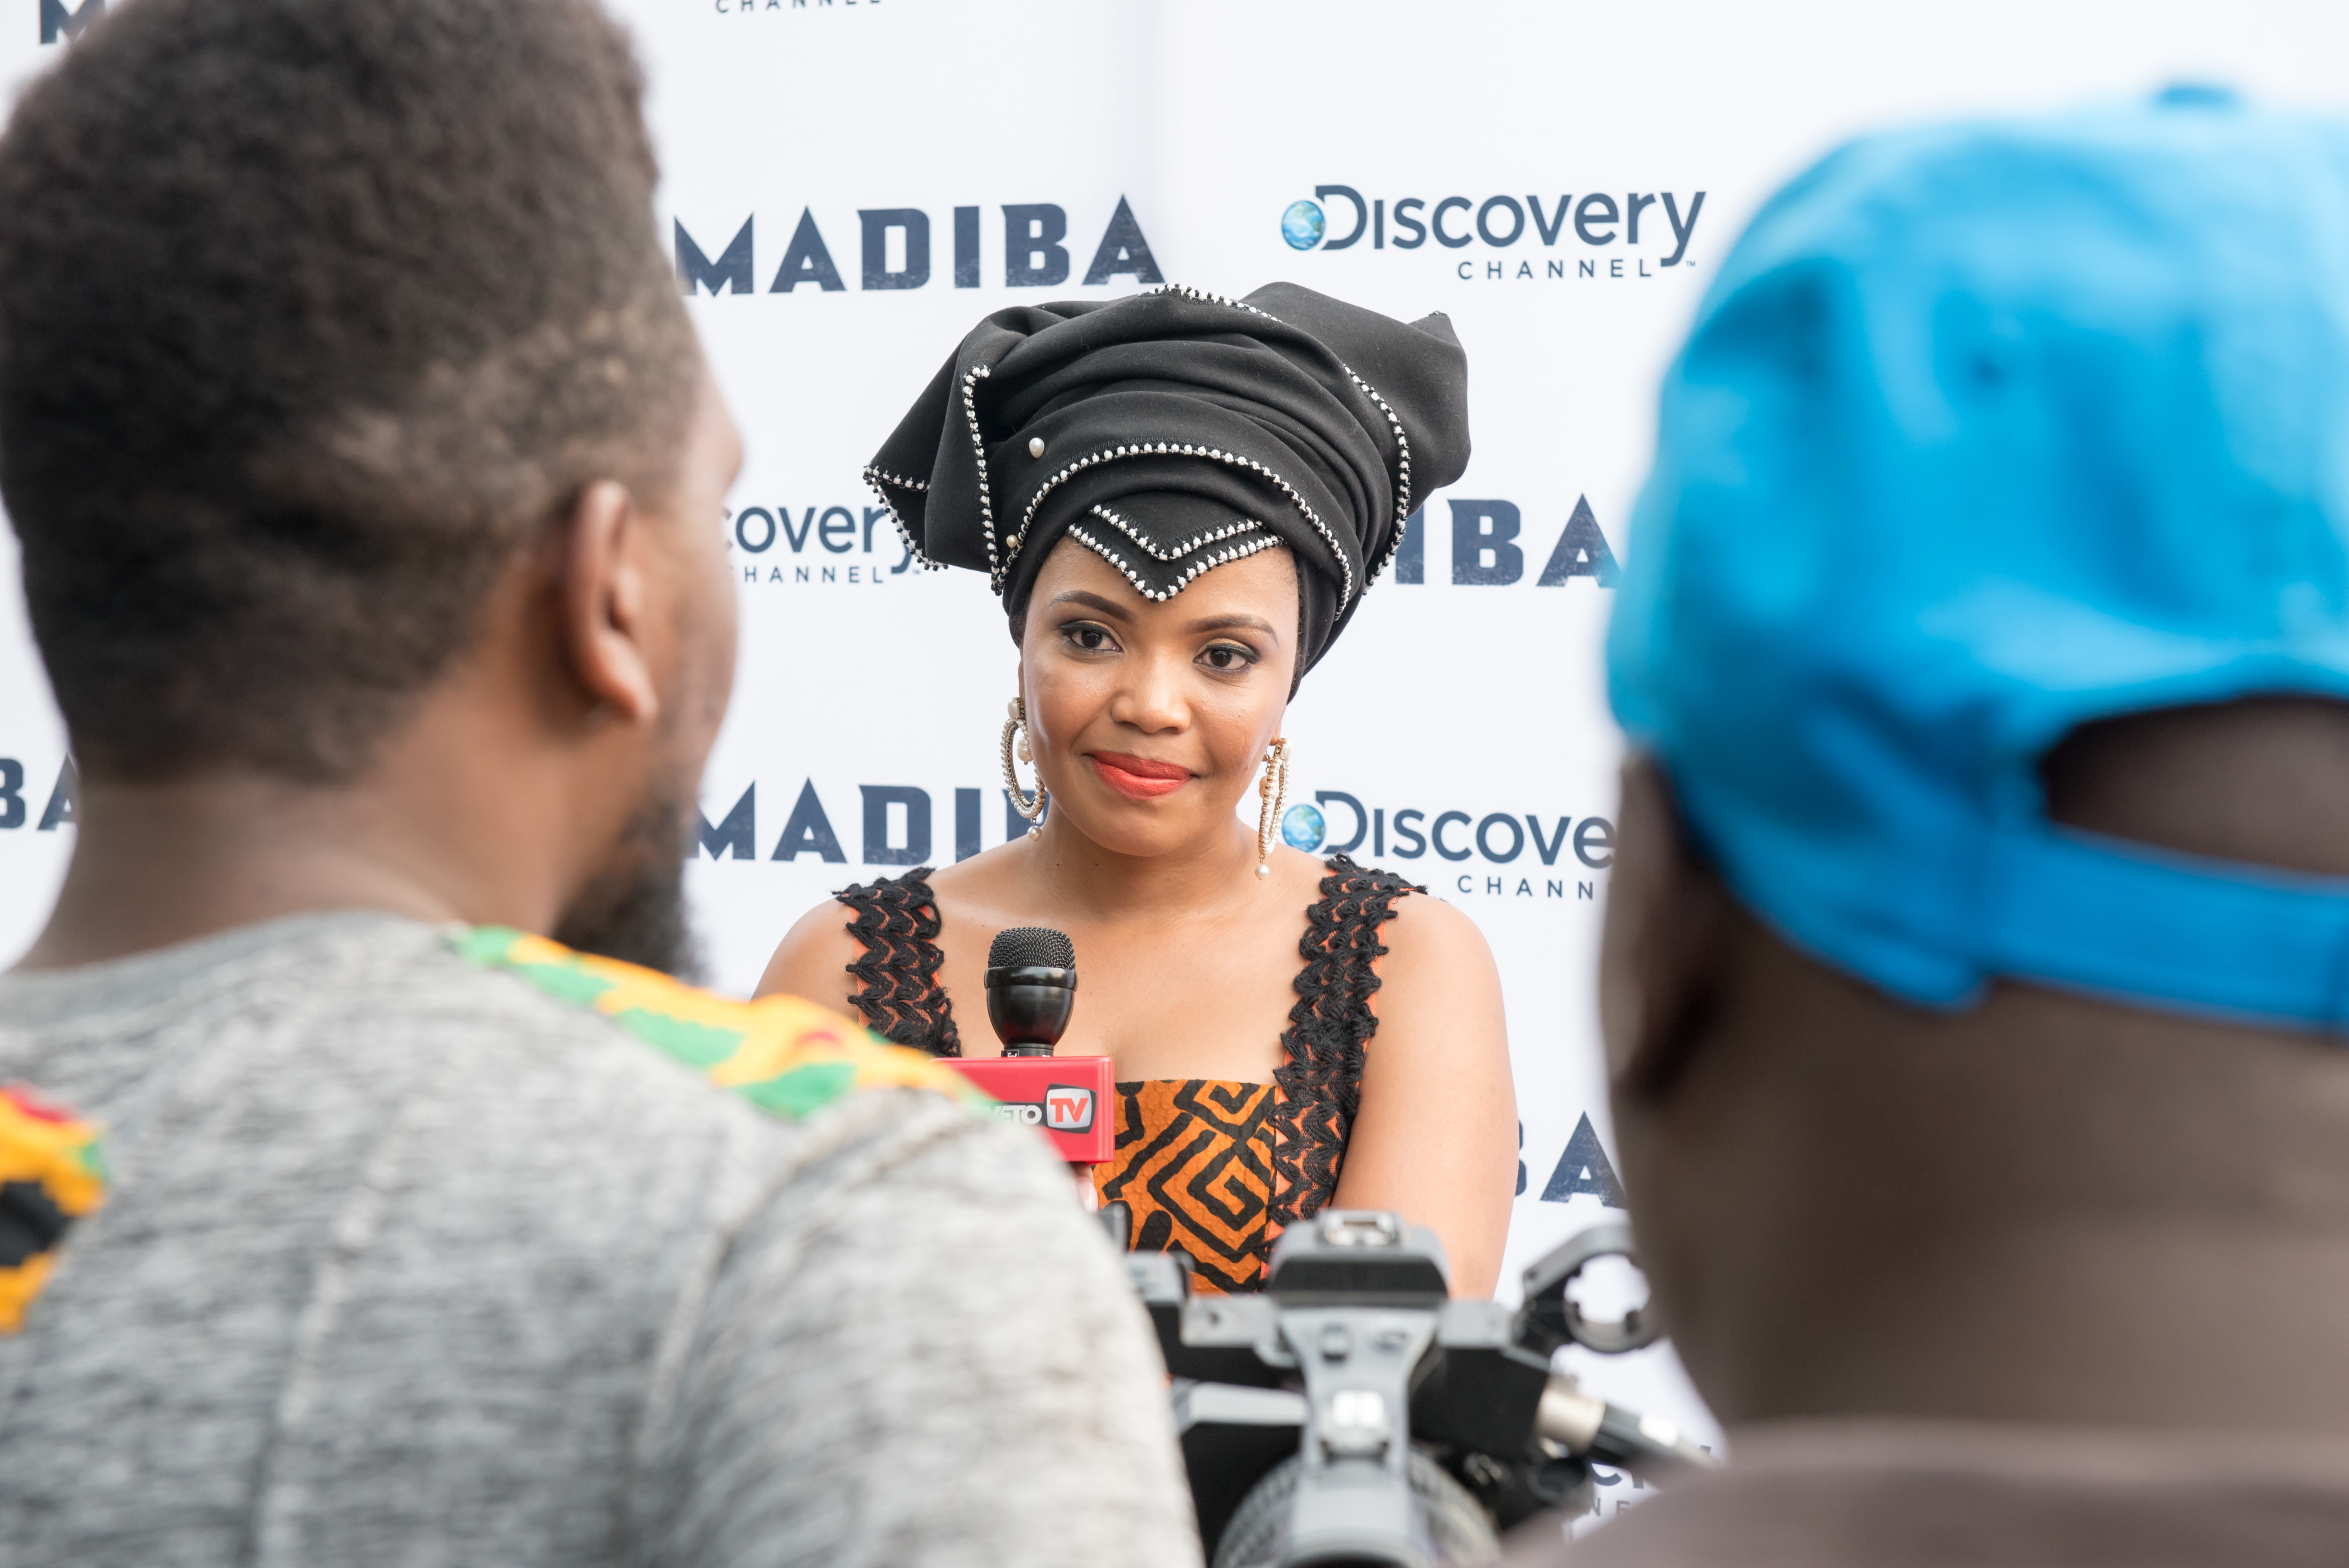 discovery channel 39 s madiba series launch event 2017 show works. Black Bedroom Furniture Sets. Home Design Ideas